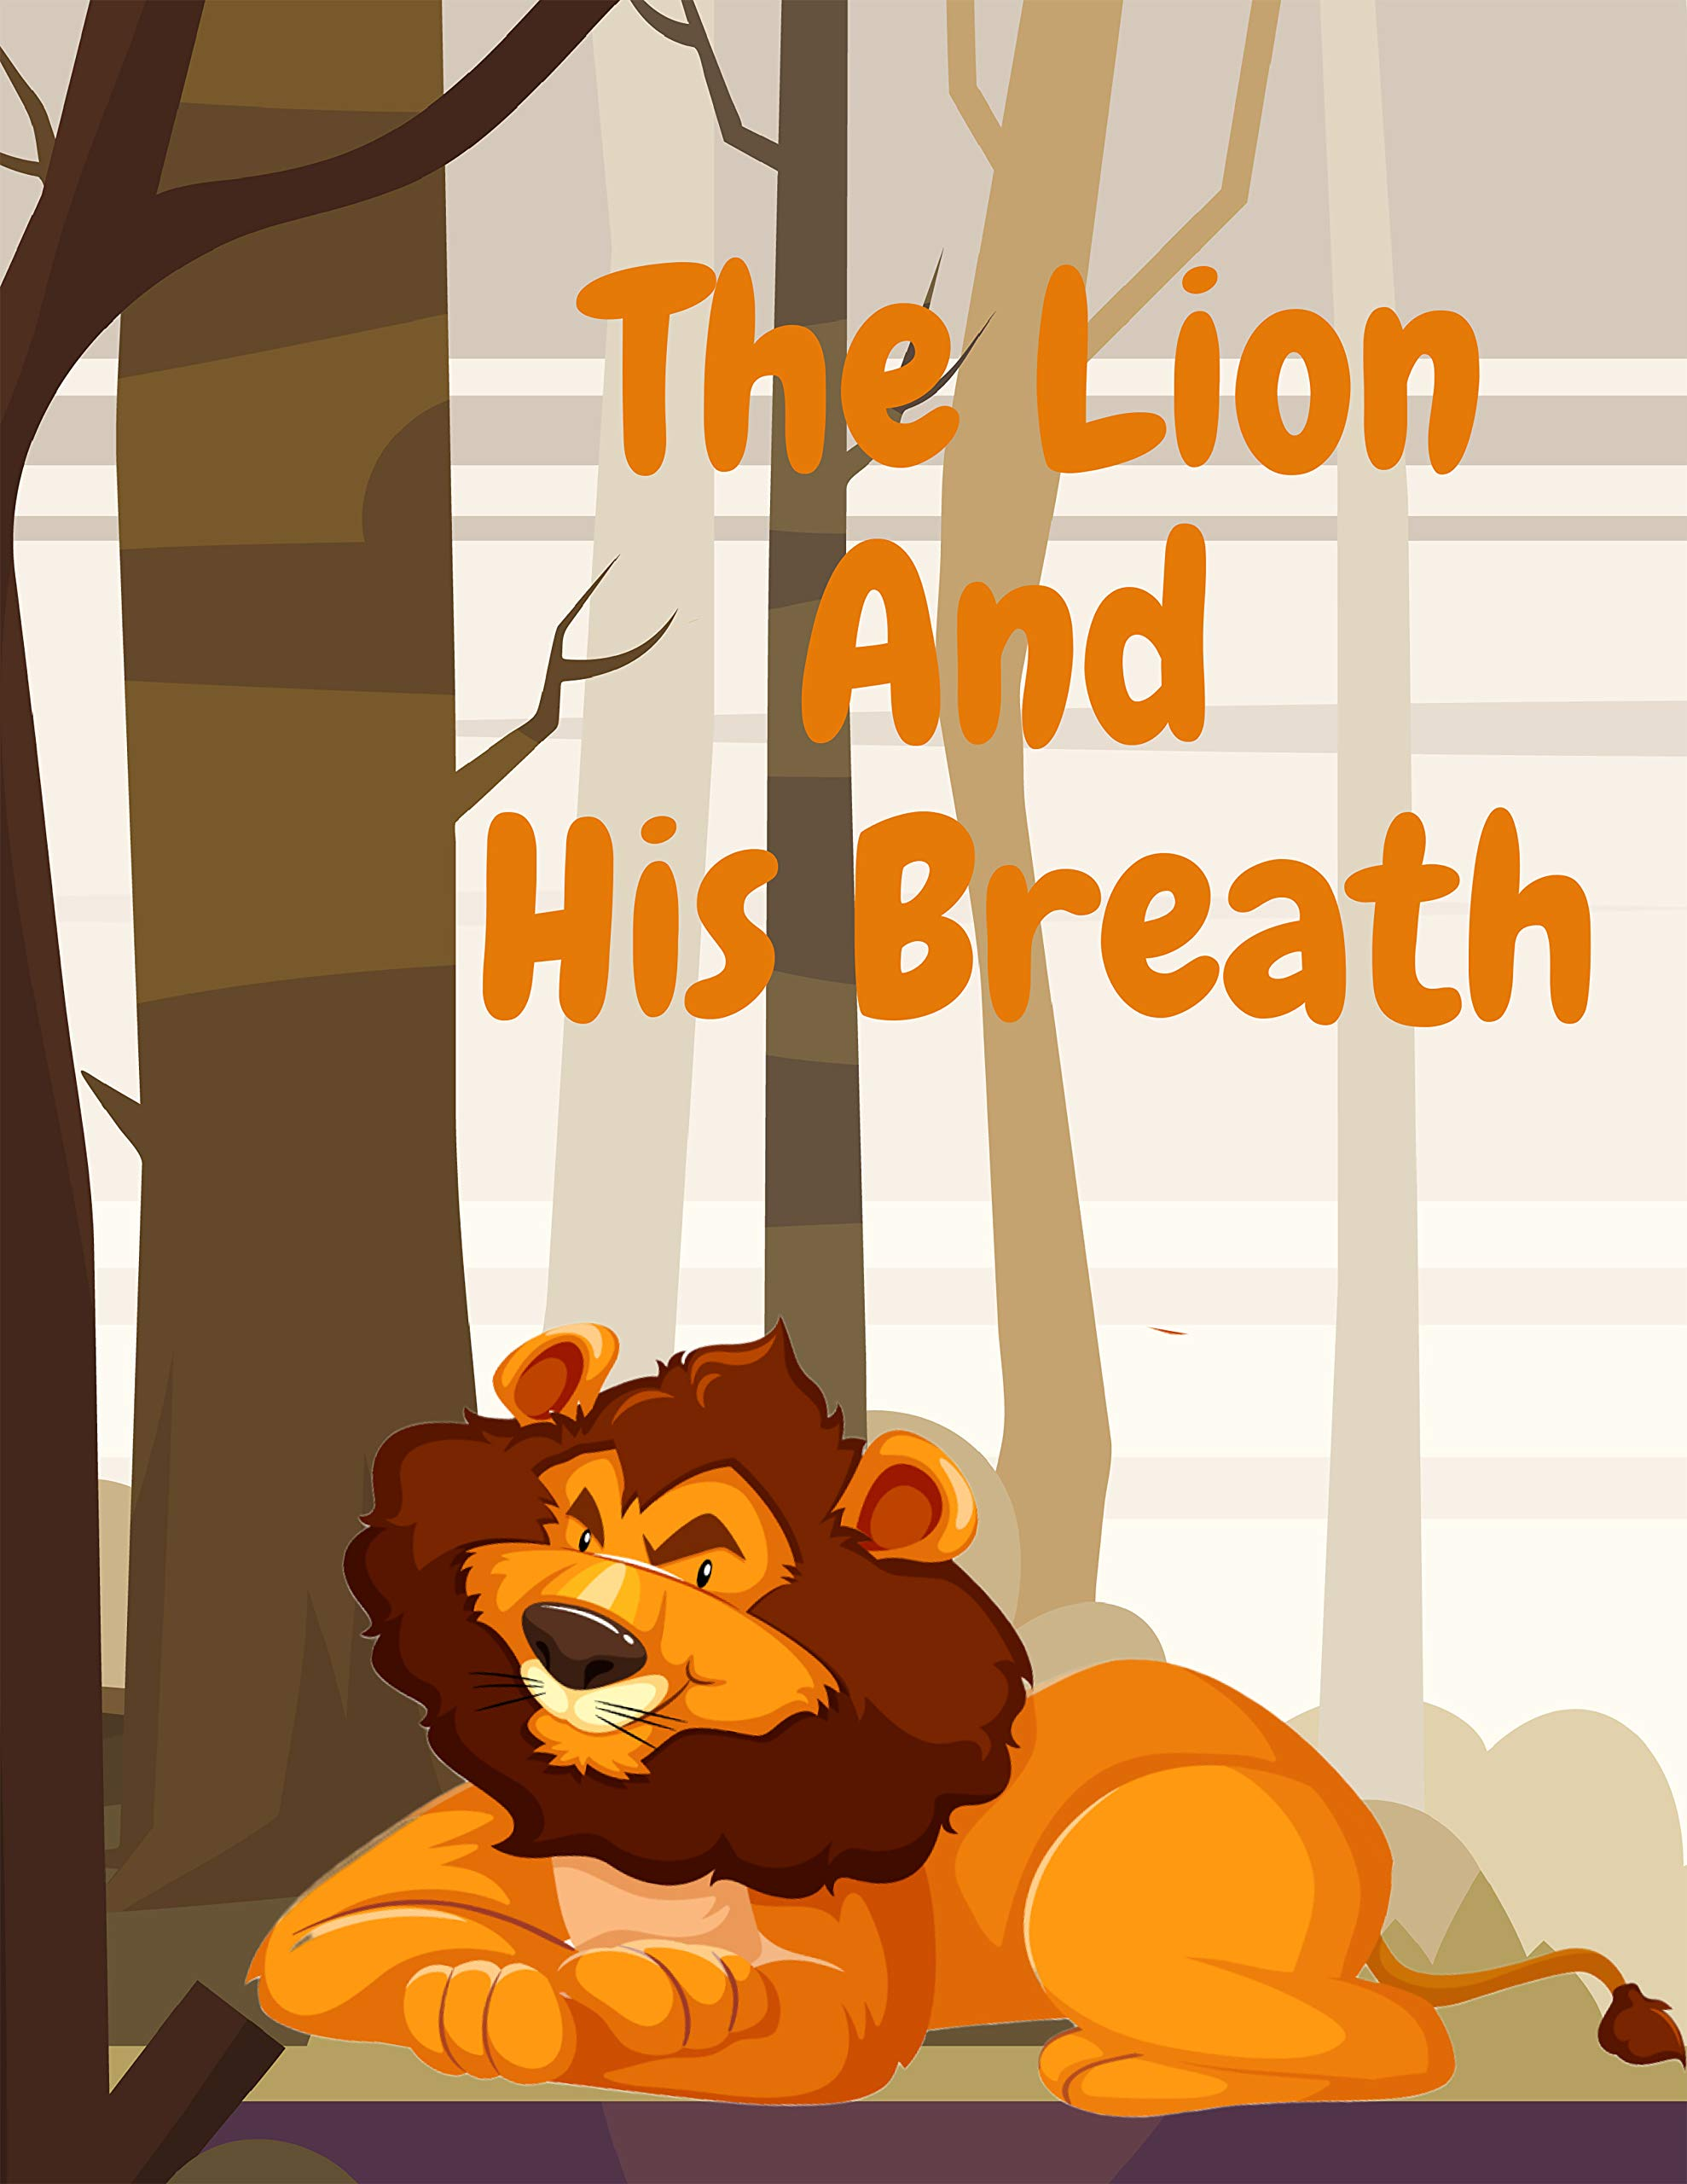 The Lion And His Breath: Books for kids, Bedtime story, Fable Of The Lion And His Breath, tales to help children fall asleep fast. Animal Short Stories, By Picture Book For Kids 2-6 Ages